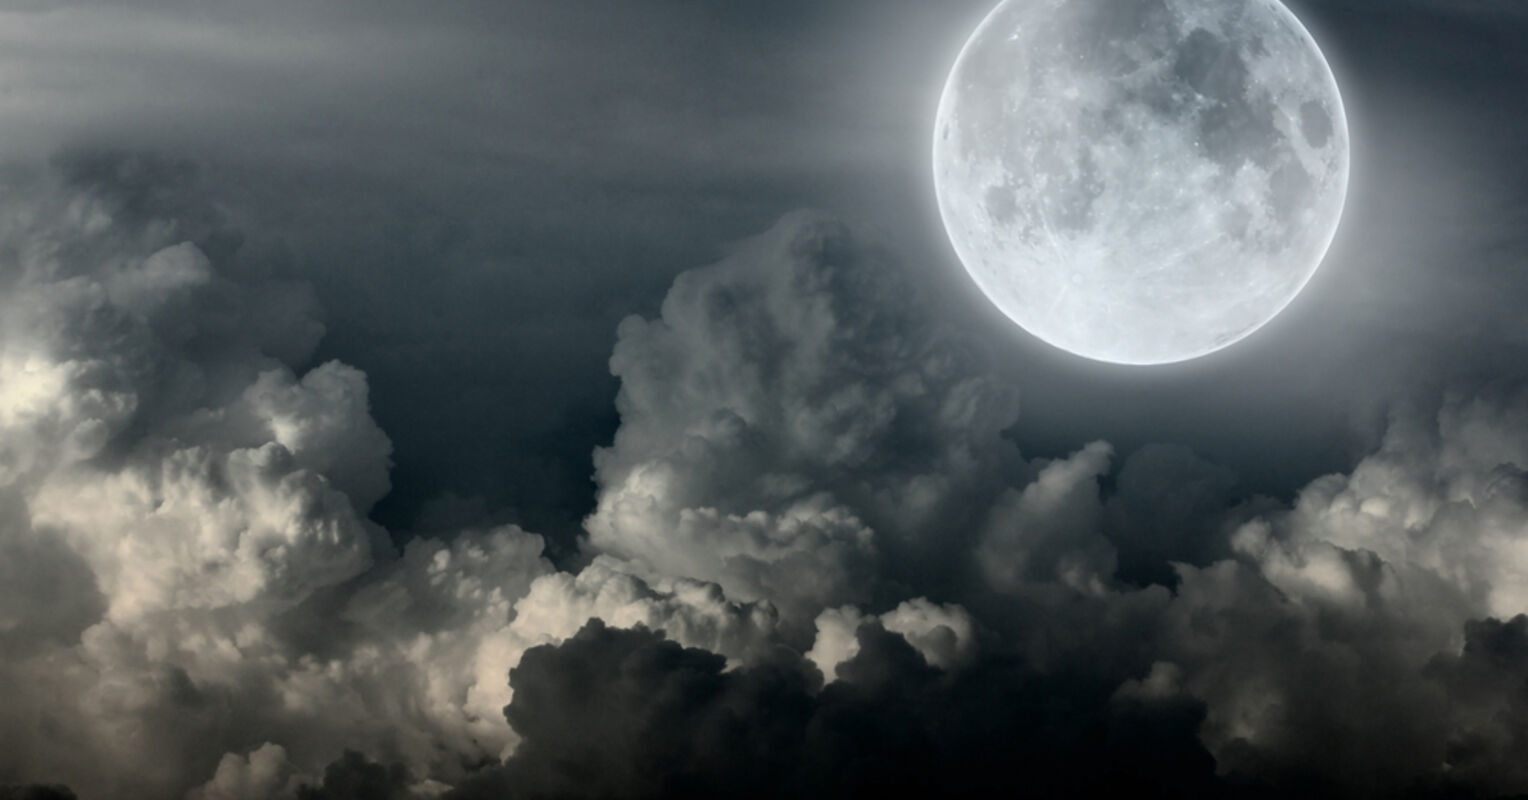 Does a Full Moon Disrupt Your Sleep? | Psychology Today